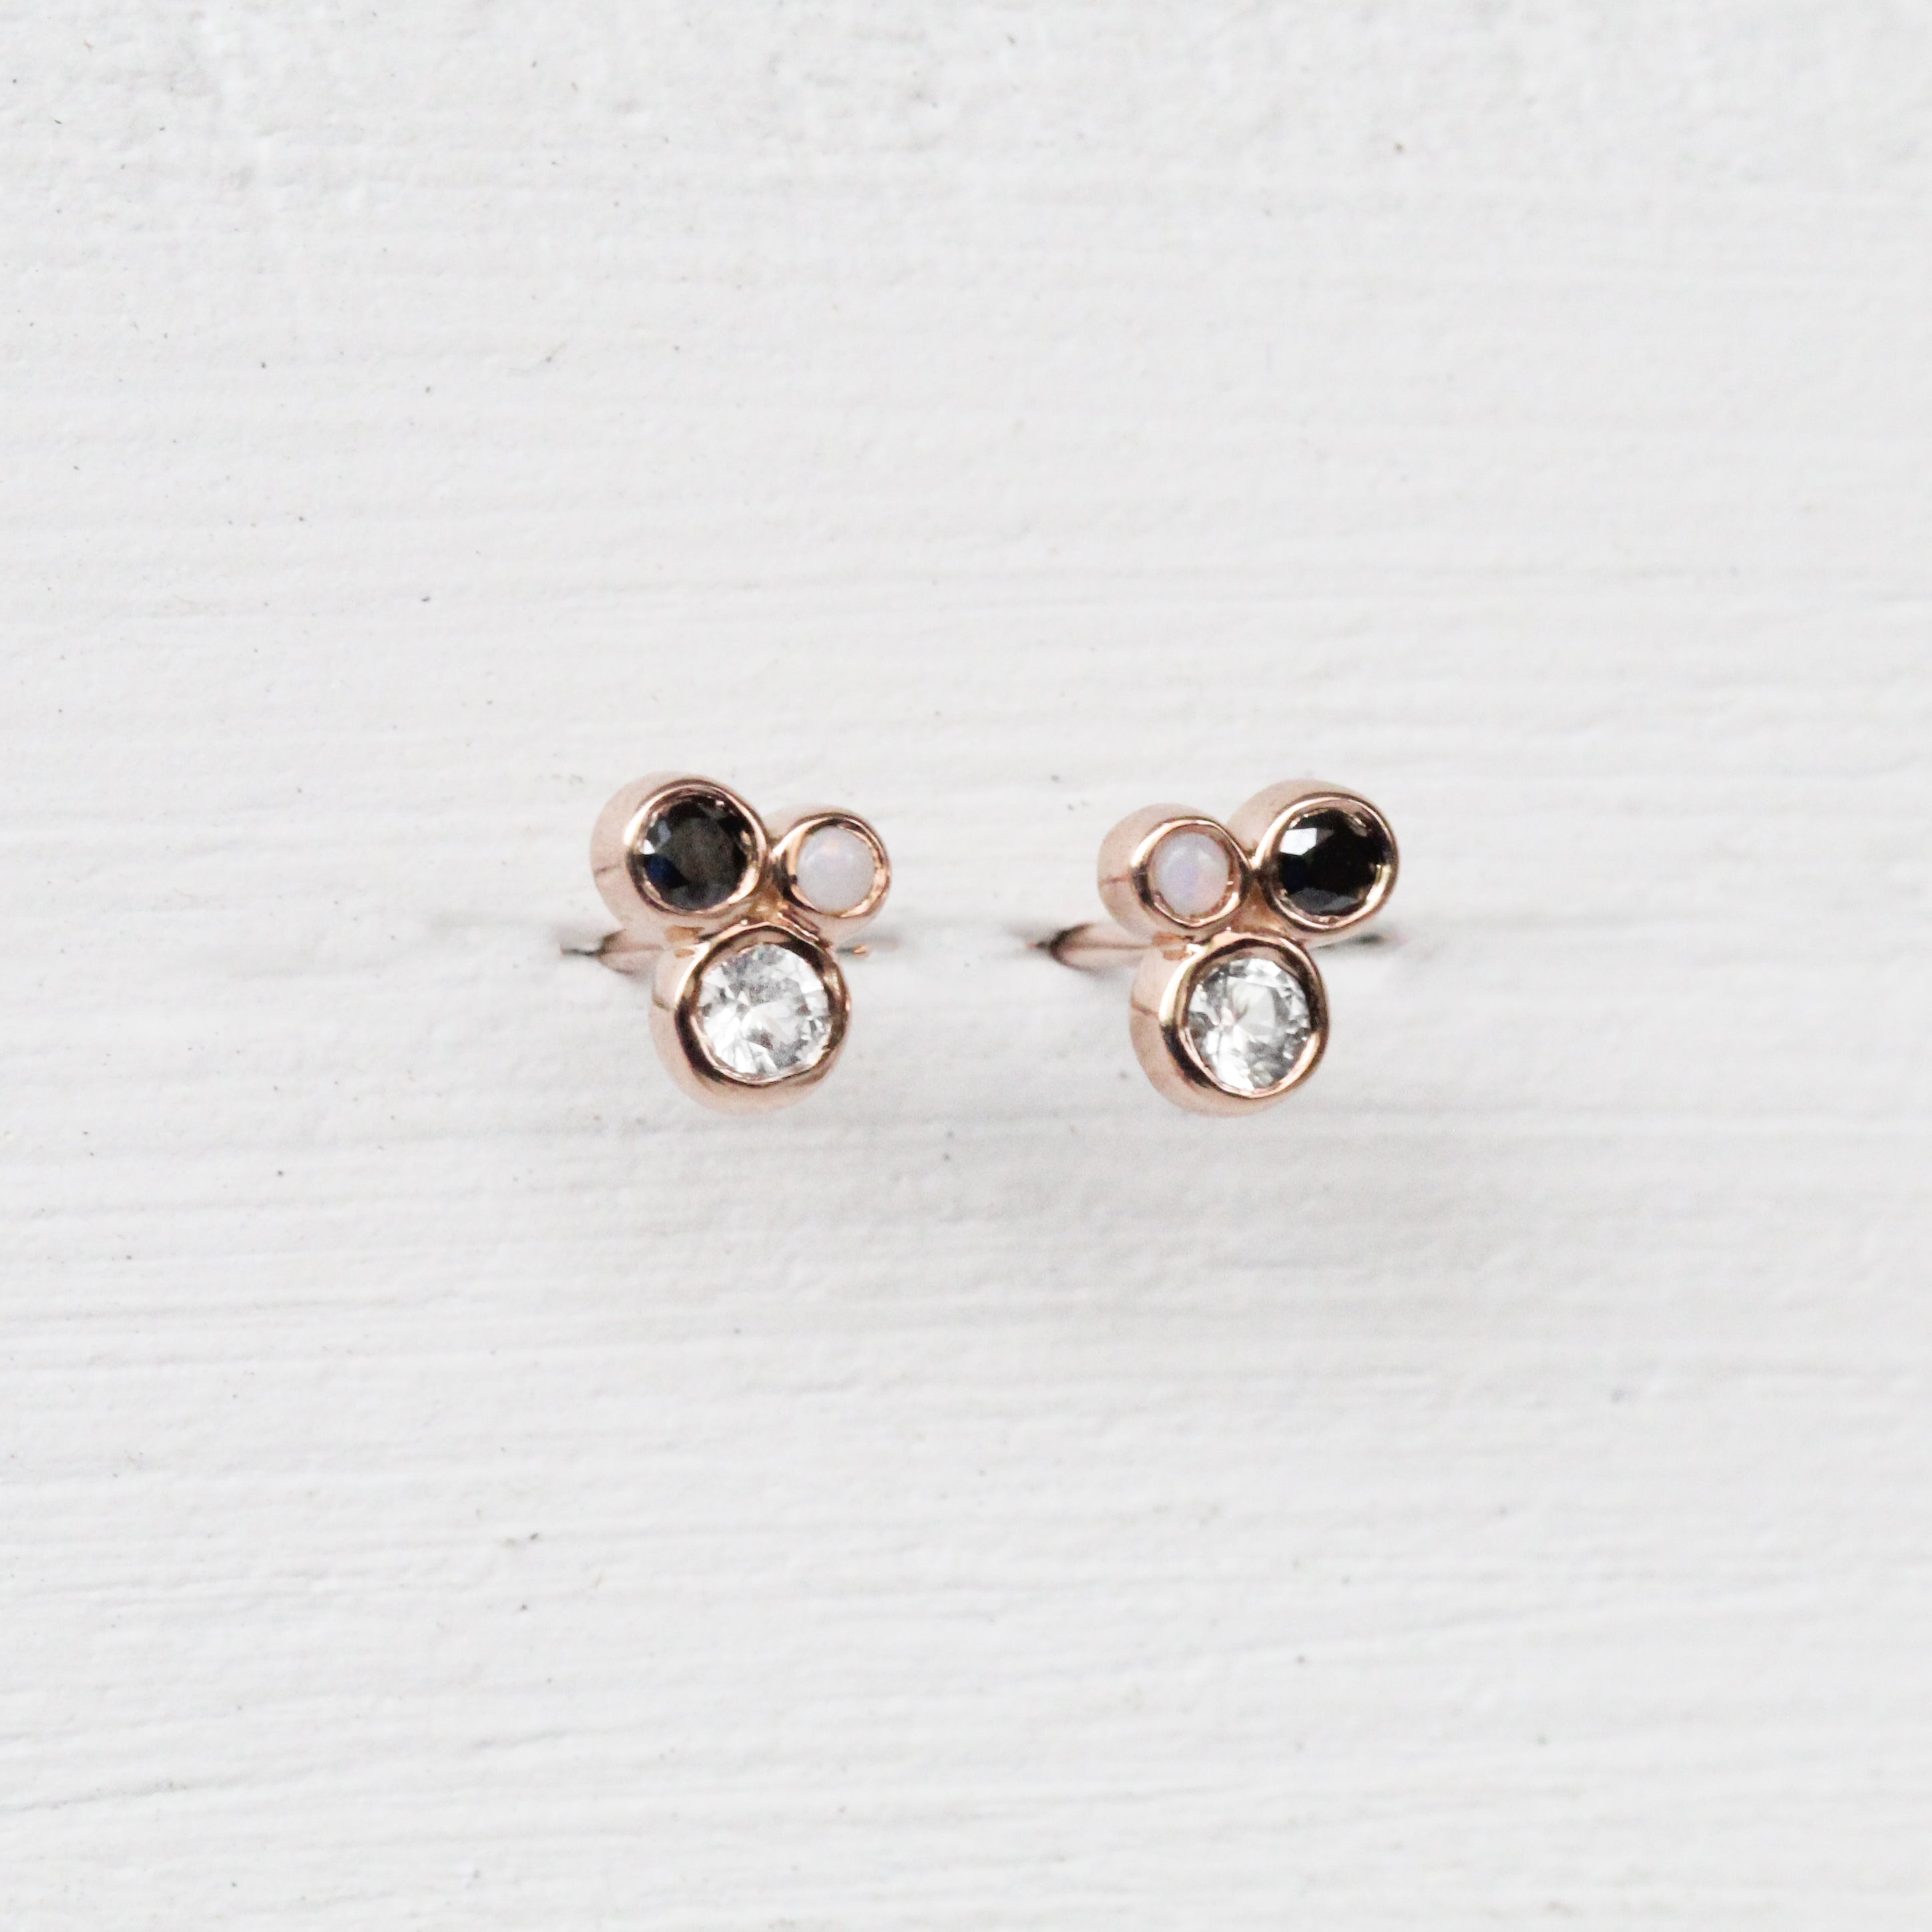 Demi Earrings with White Sapphire, Opal, and Black Diamond - 14k Gold - Made to Order - Salt & Pepper Celestial Diamond Engagement Rings and Wedding Bands  by Midwinter Co.